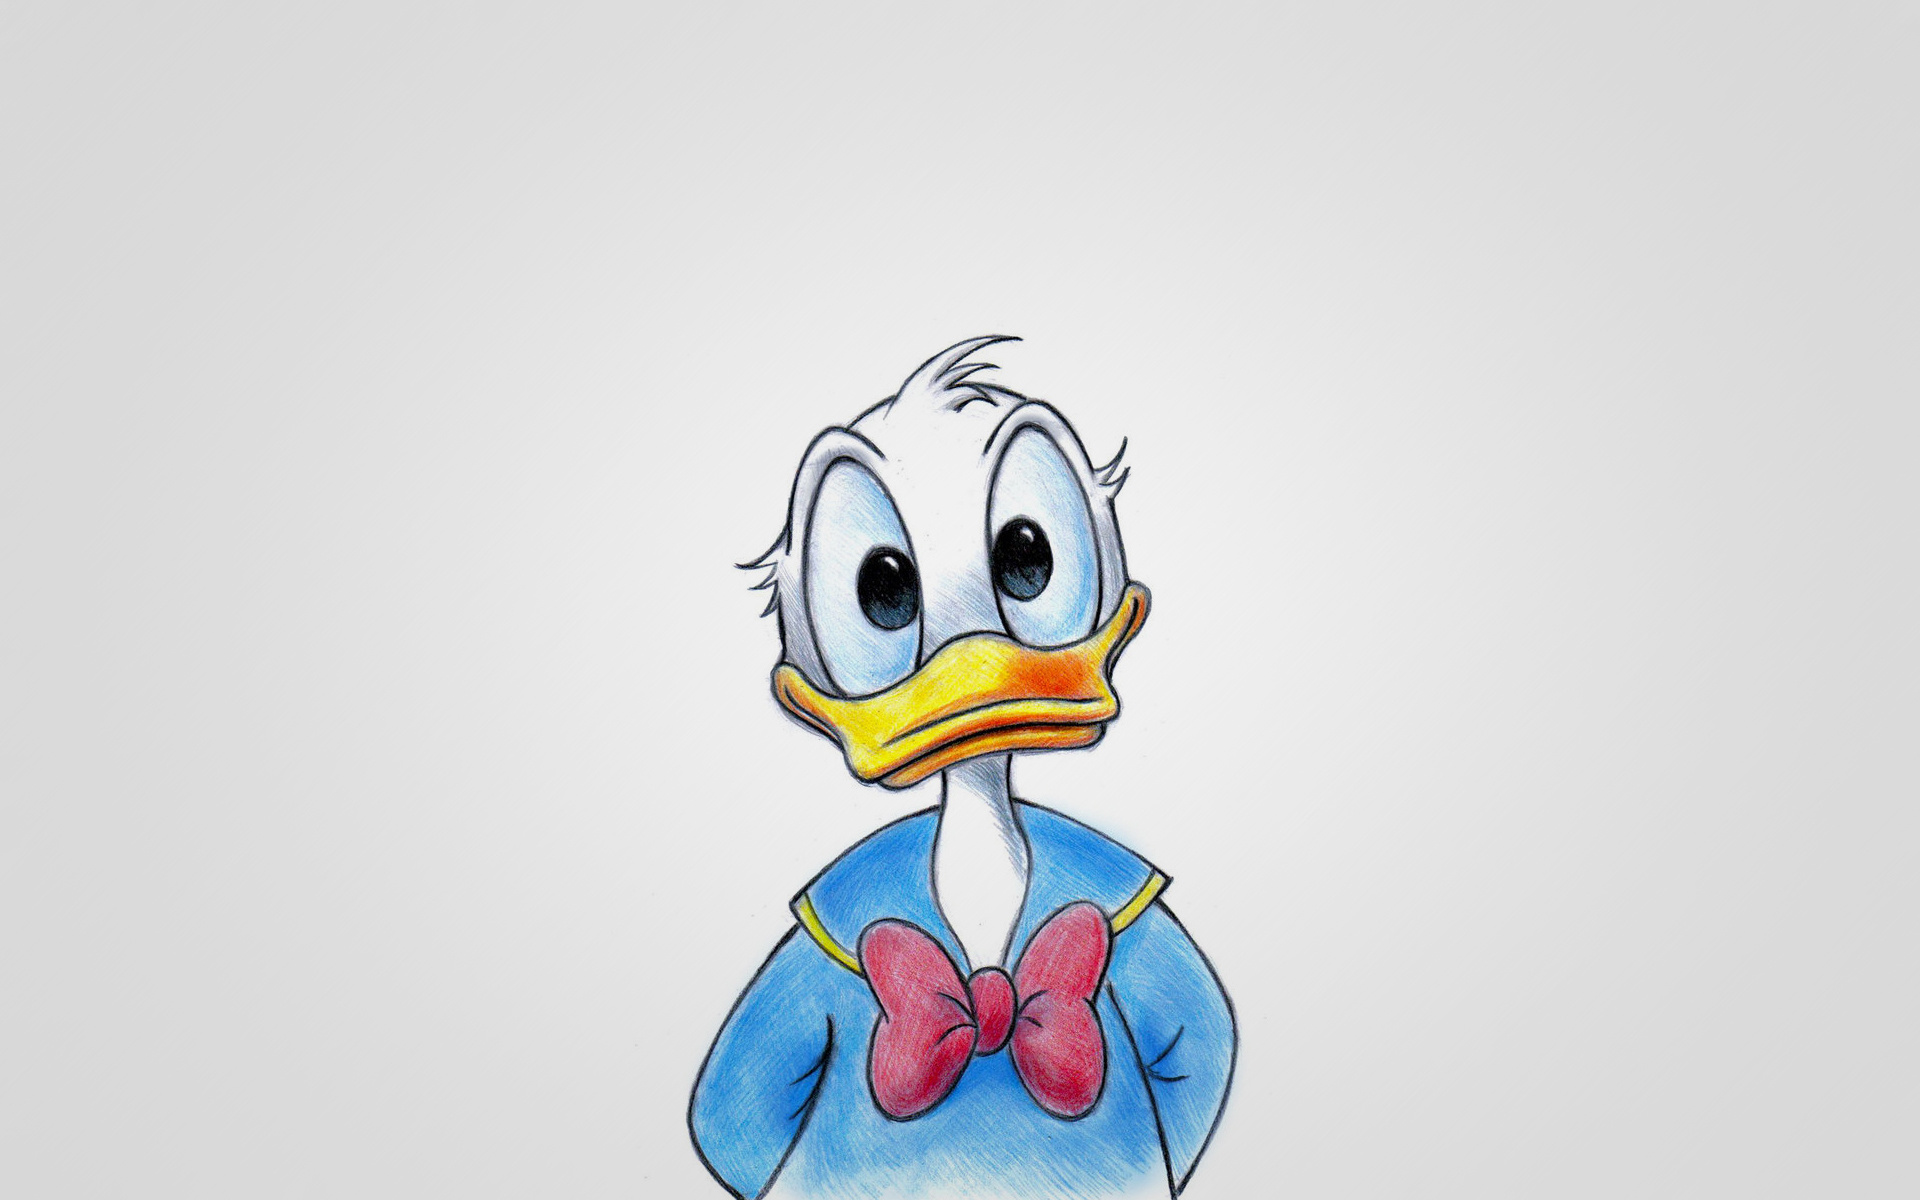 Walt disney donald fauntleroy duck wallpaper 1920x1200 - Dessin donald duck ...